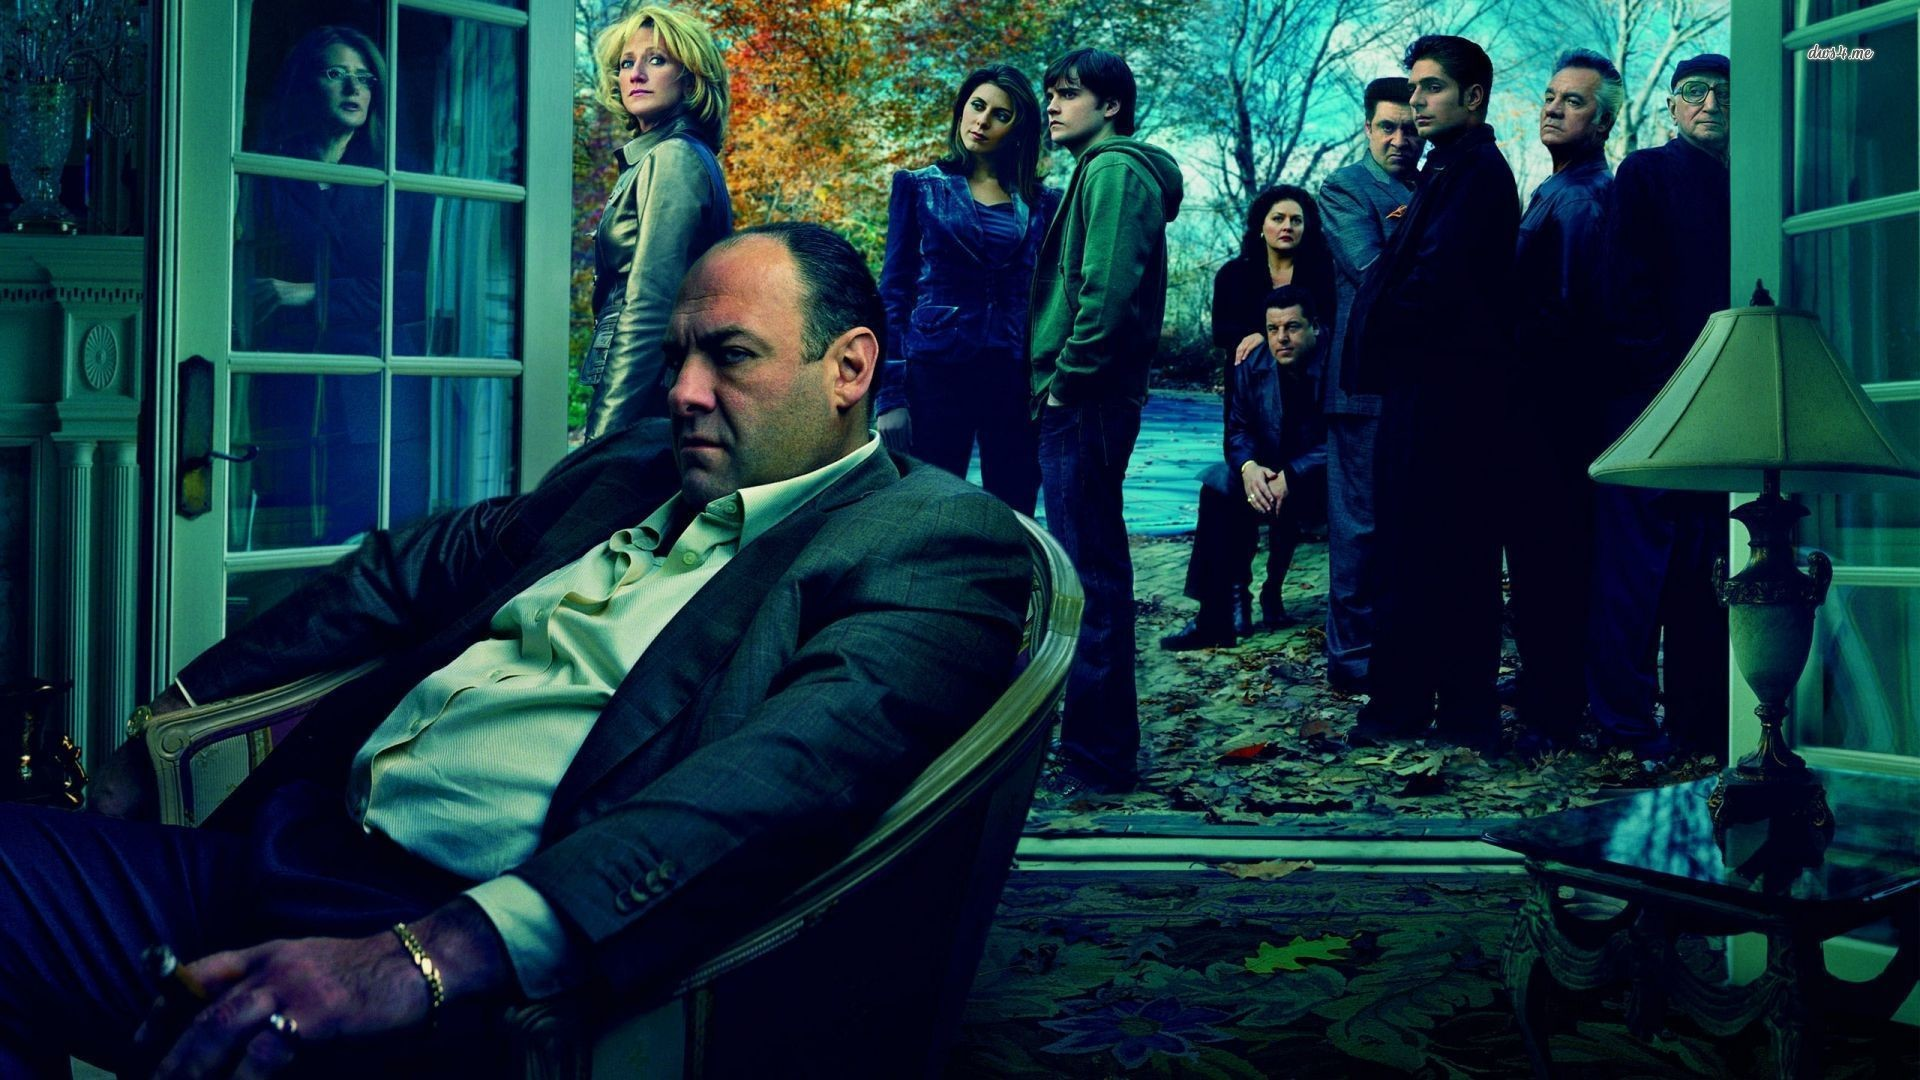 Res: 1920x1080, The Sopranos Wallpapers 4 - 1920 X 1080